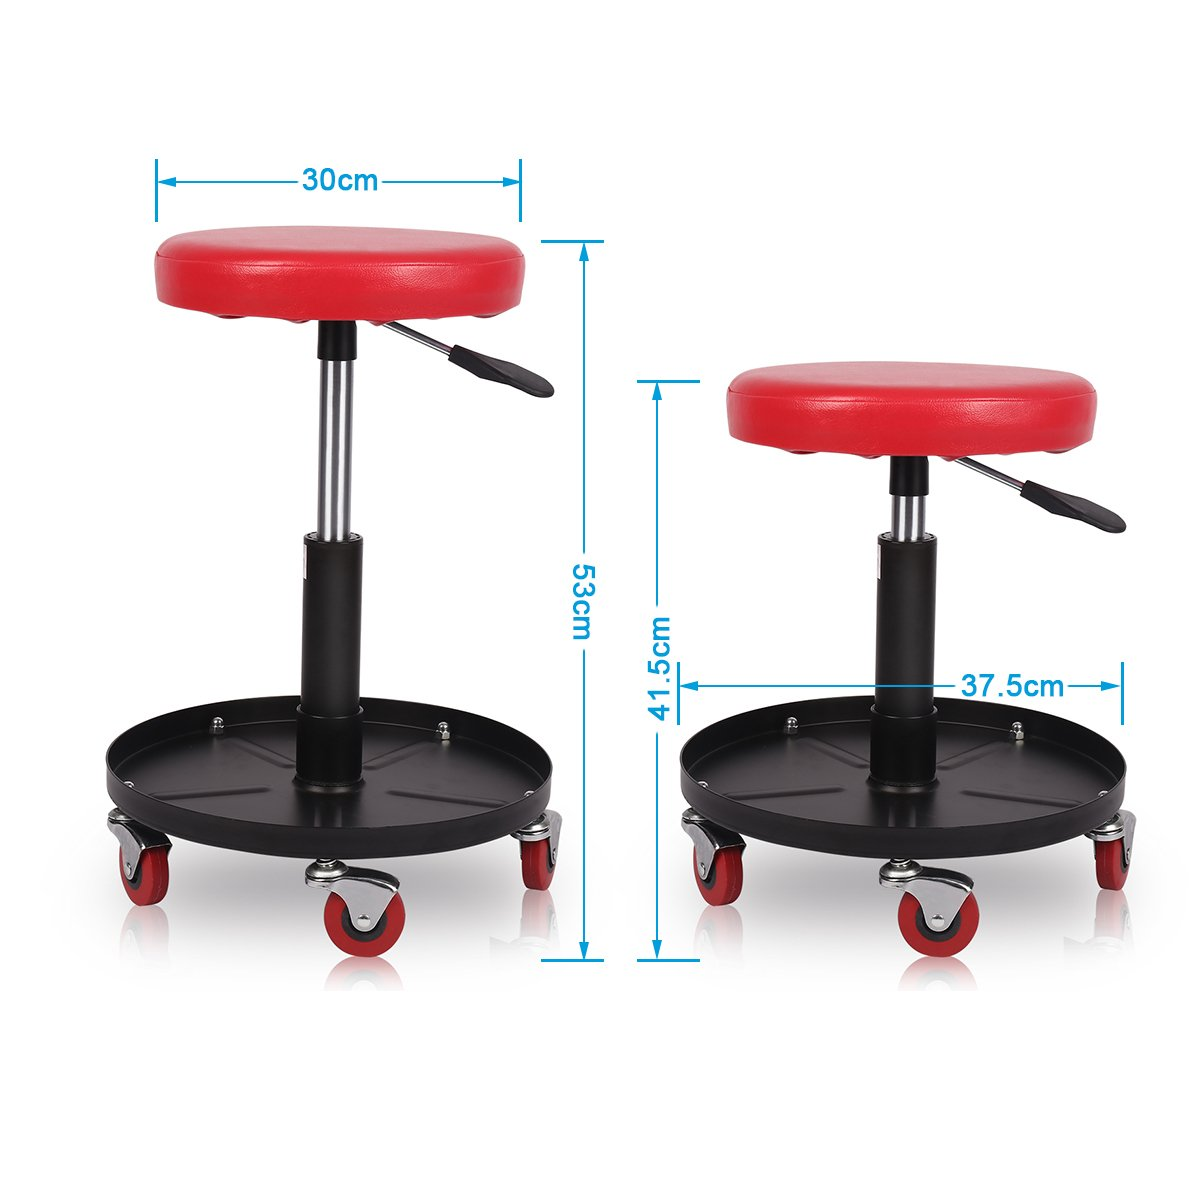 Amazon.com Excelvan Mechanic Car Creeper Seat Round Rolling Stool Height Adjustable Chair Garage Capacity Up to 265LB 120KG Repair Tool for Vehicle At-home ...  sc 1 st  Amazon.com : mechanics stool amazon - islam-shia.org